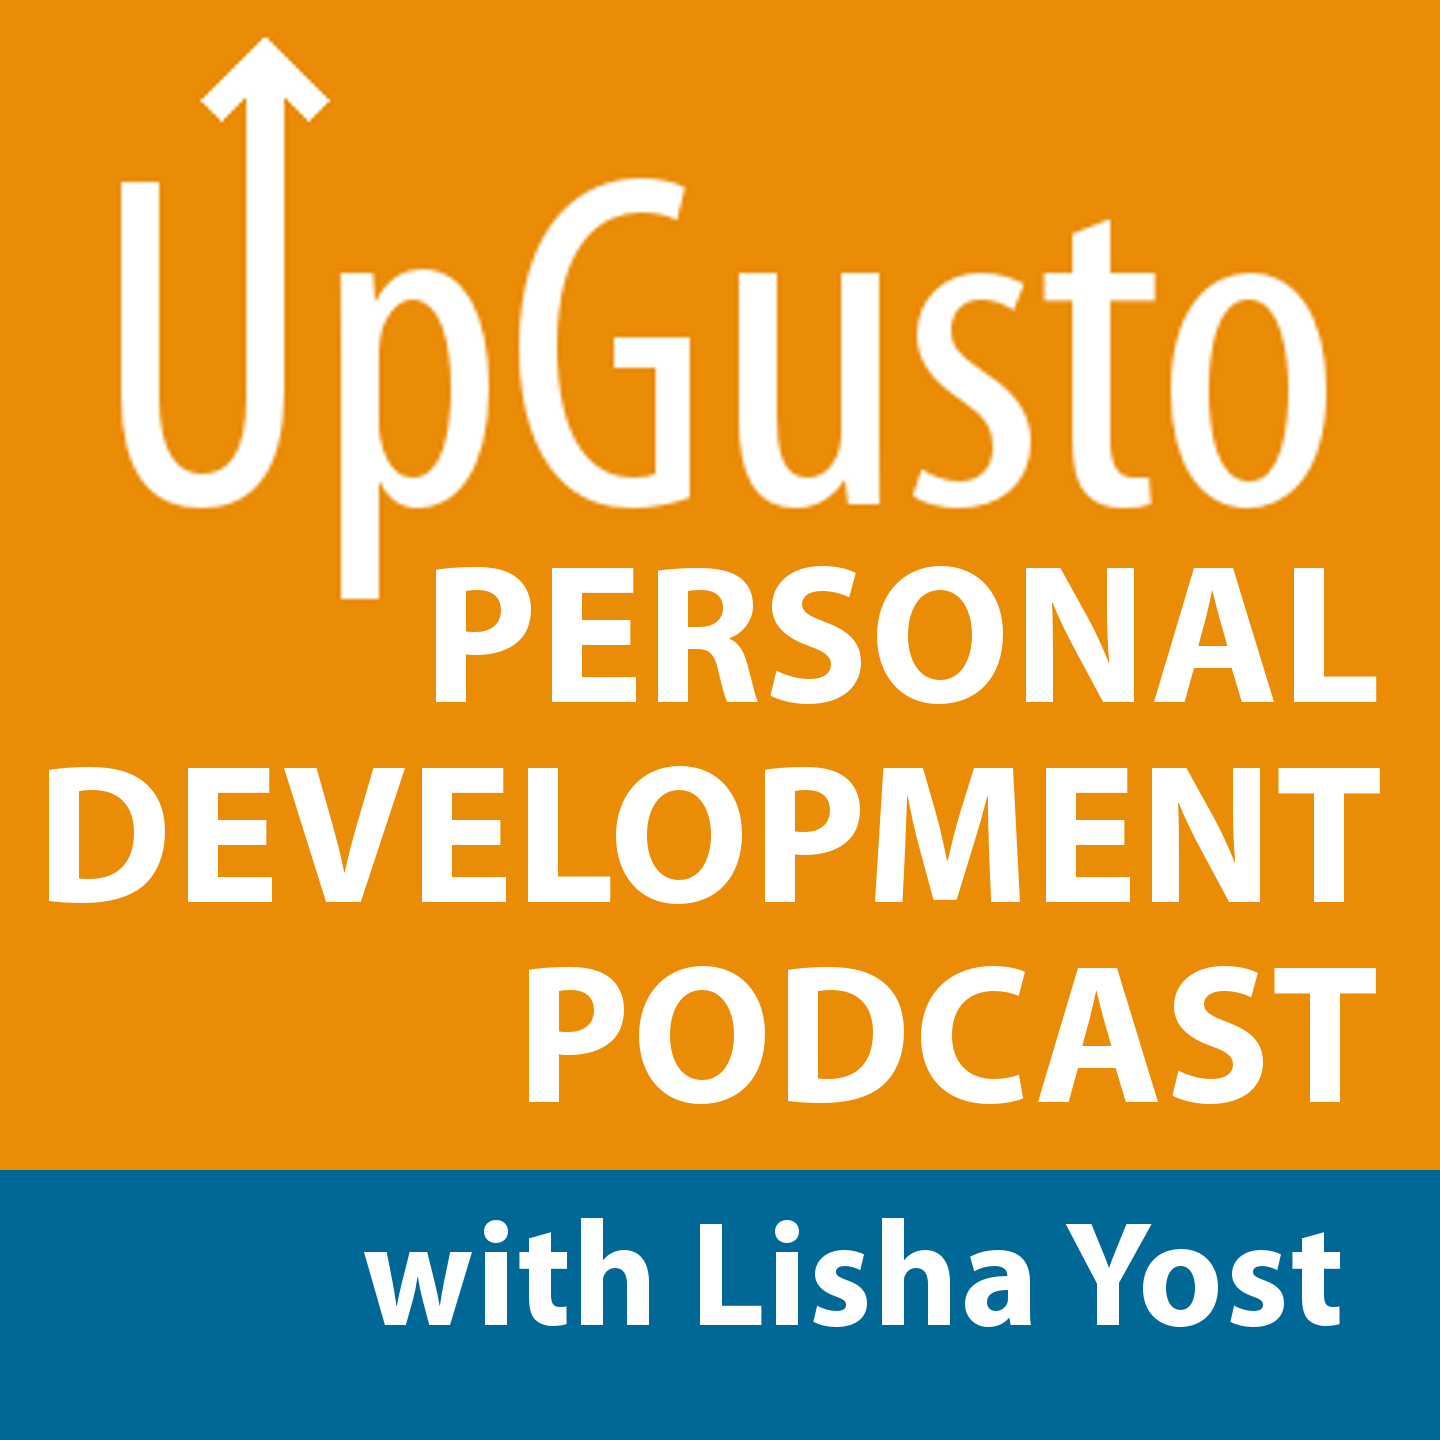 UpGusto Personal Development Podcast - Motivation, Inspiration, Success, Goals, Happiness - with Lisha Yost